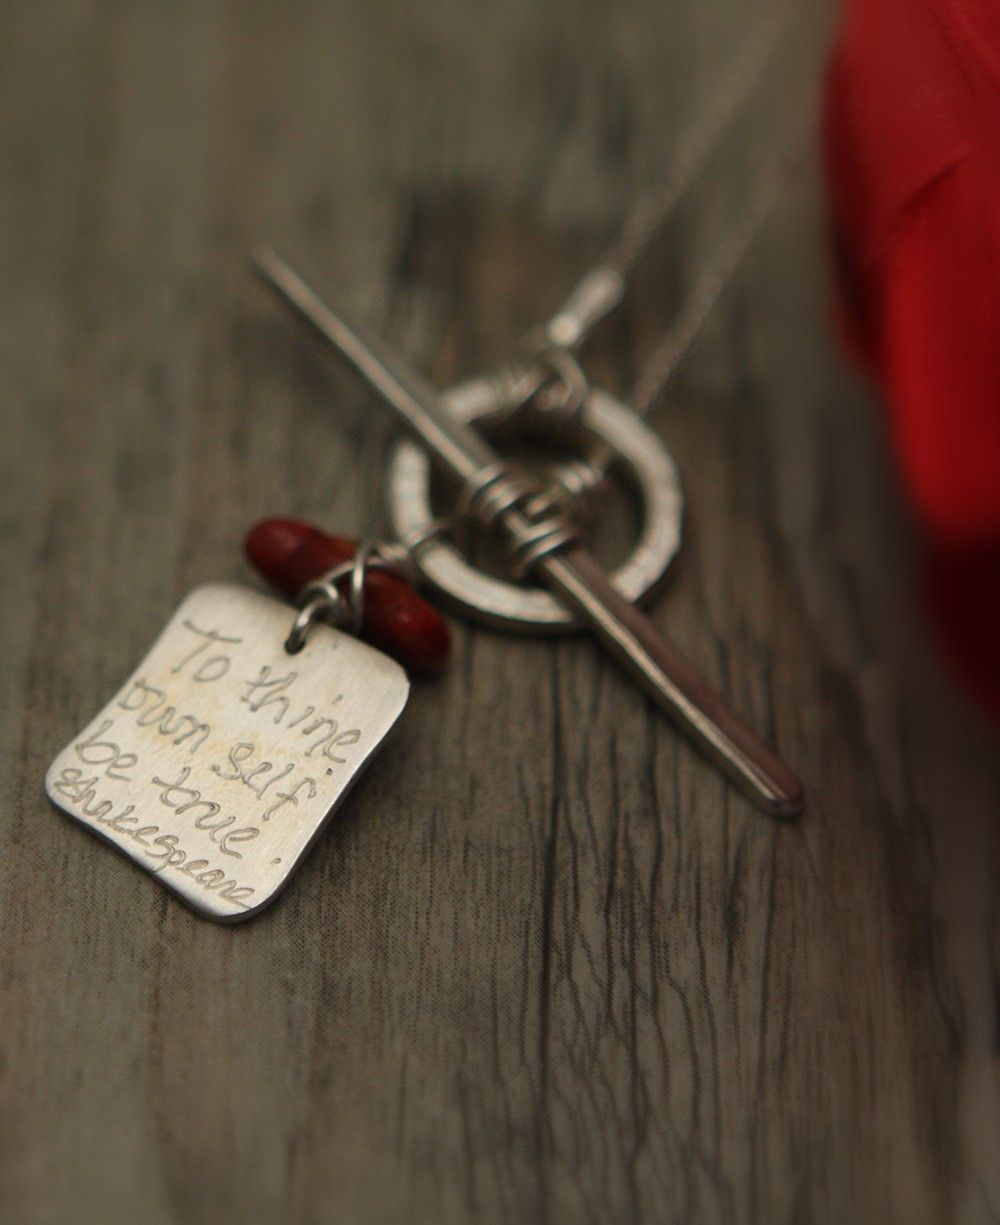 """To thine own self be true"" – inspirational Shakespeare quote necklace by BuddhaGroove.com."